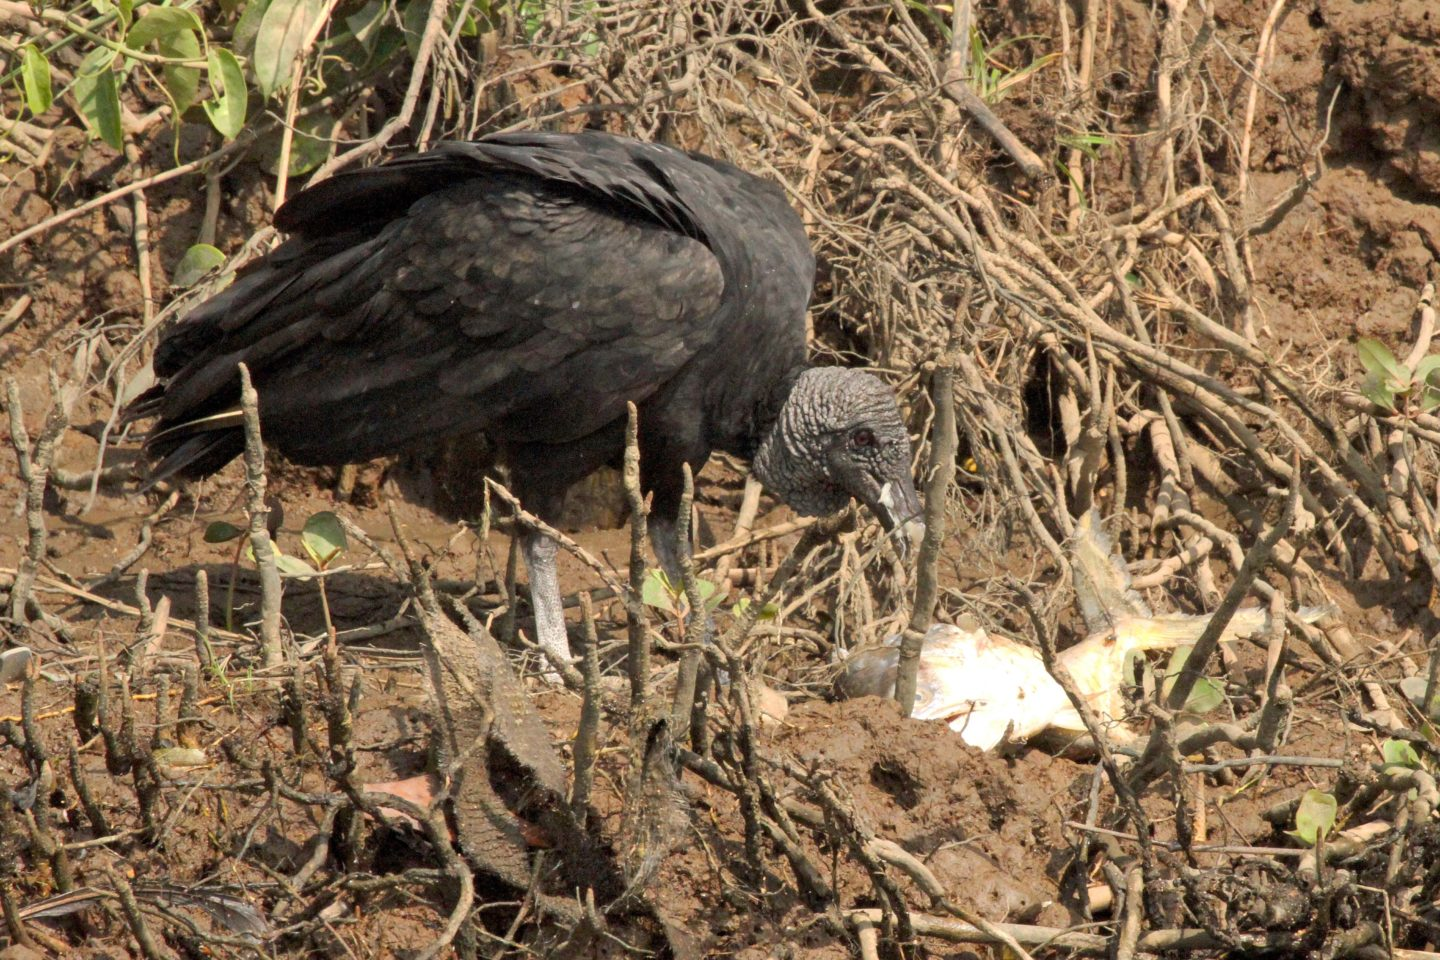 Black Vulture eating fish, Rio Tarcoles, Costa Rica